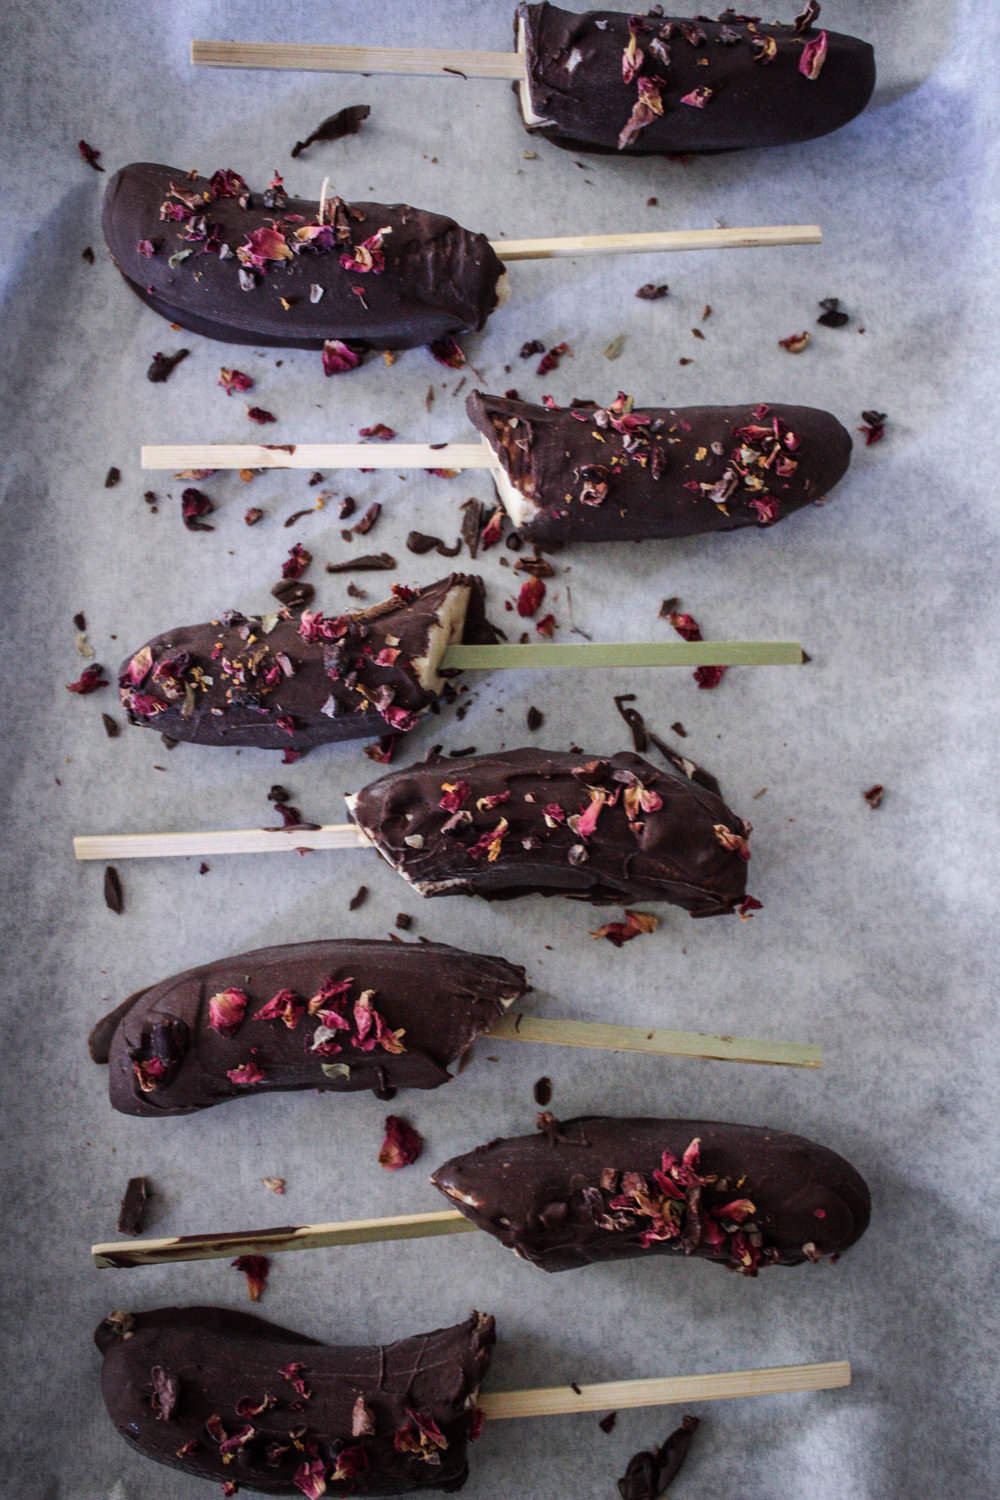 Rose and Cocoa Nib Frozen Bananas